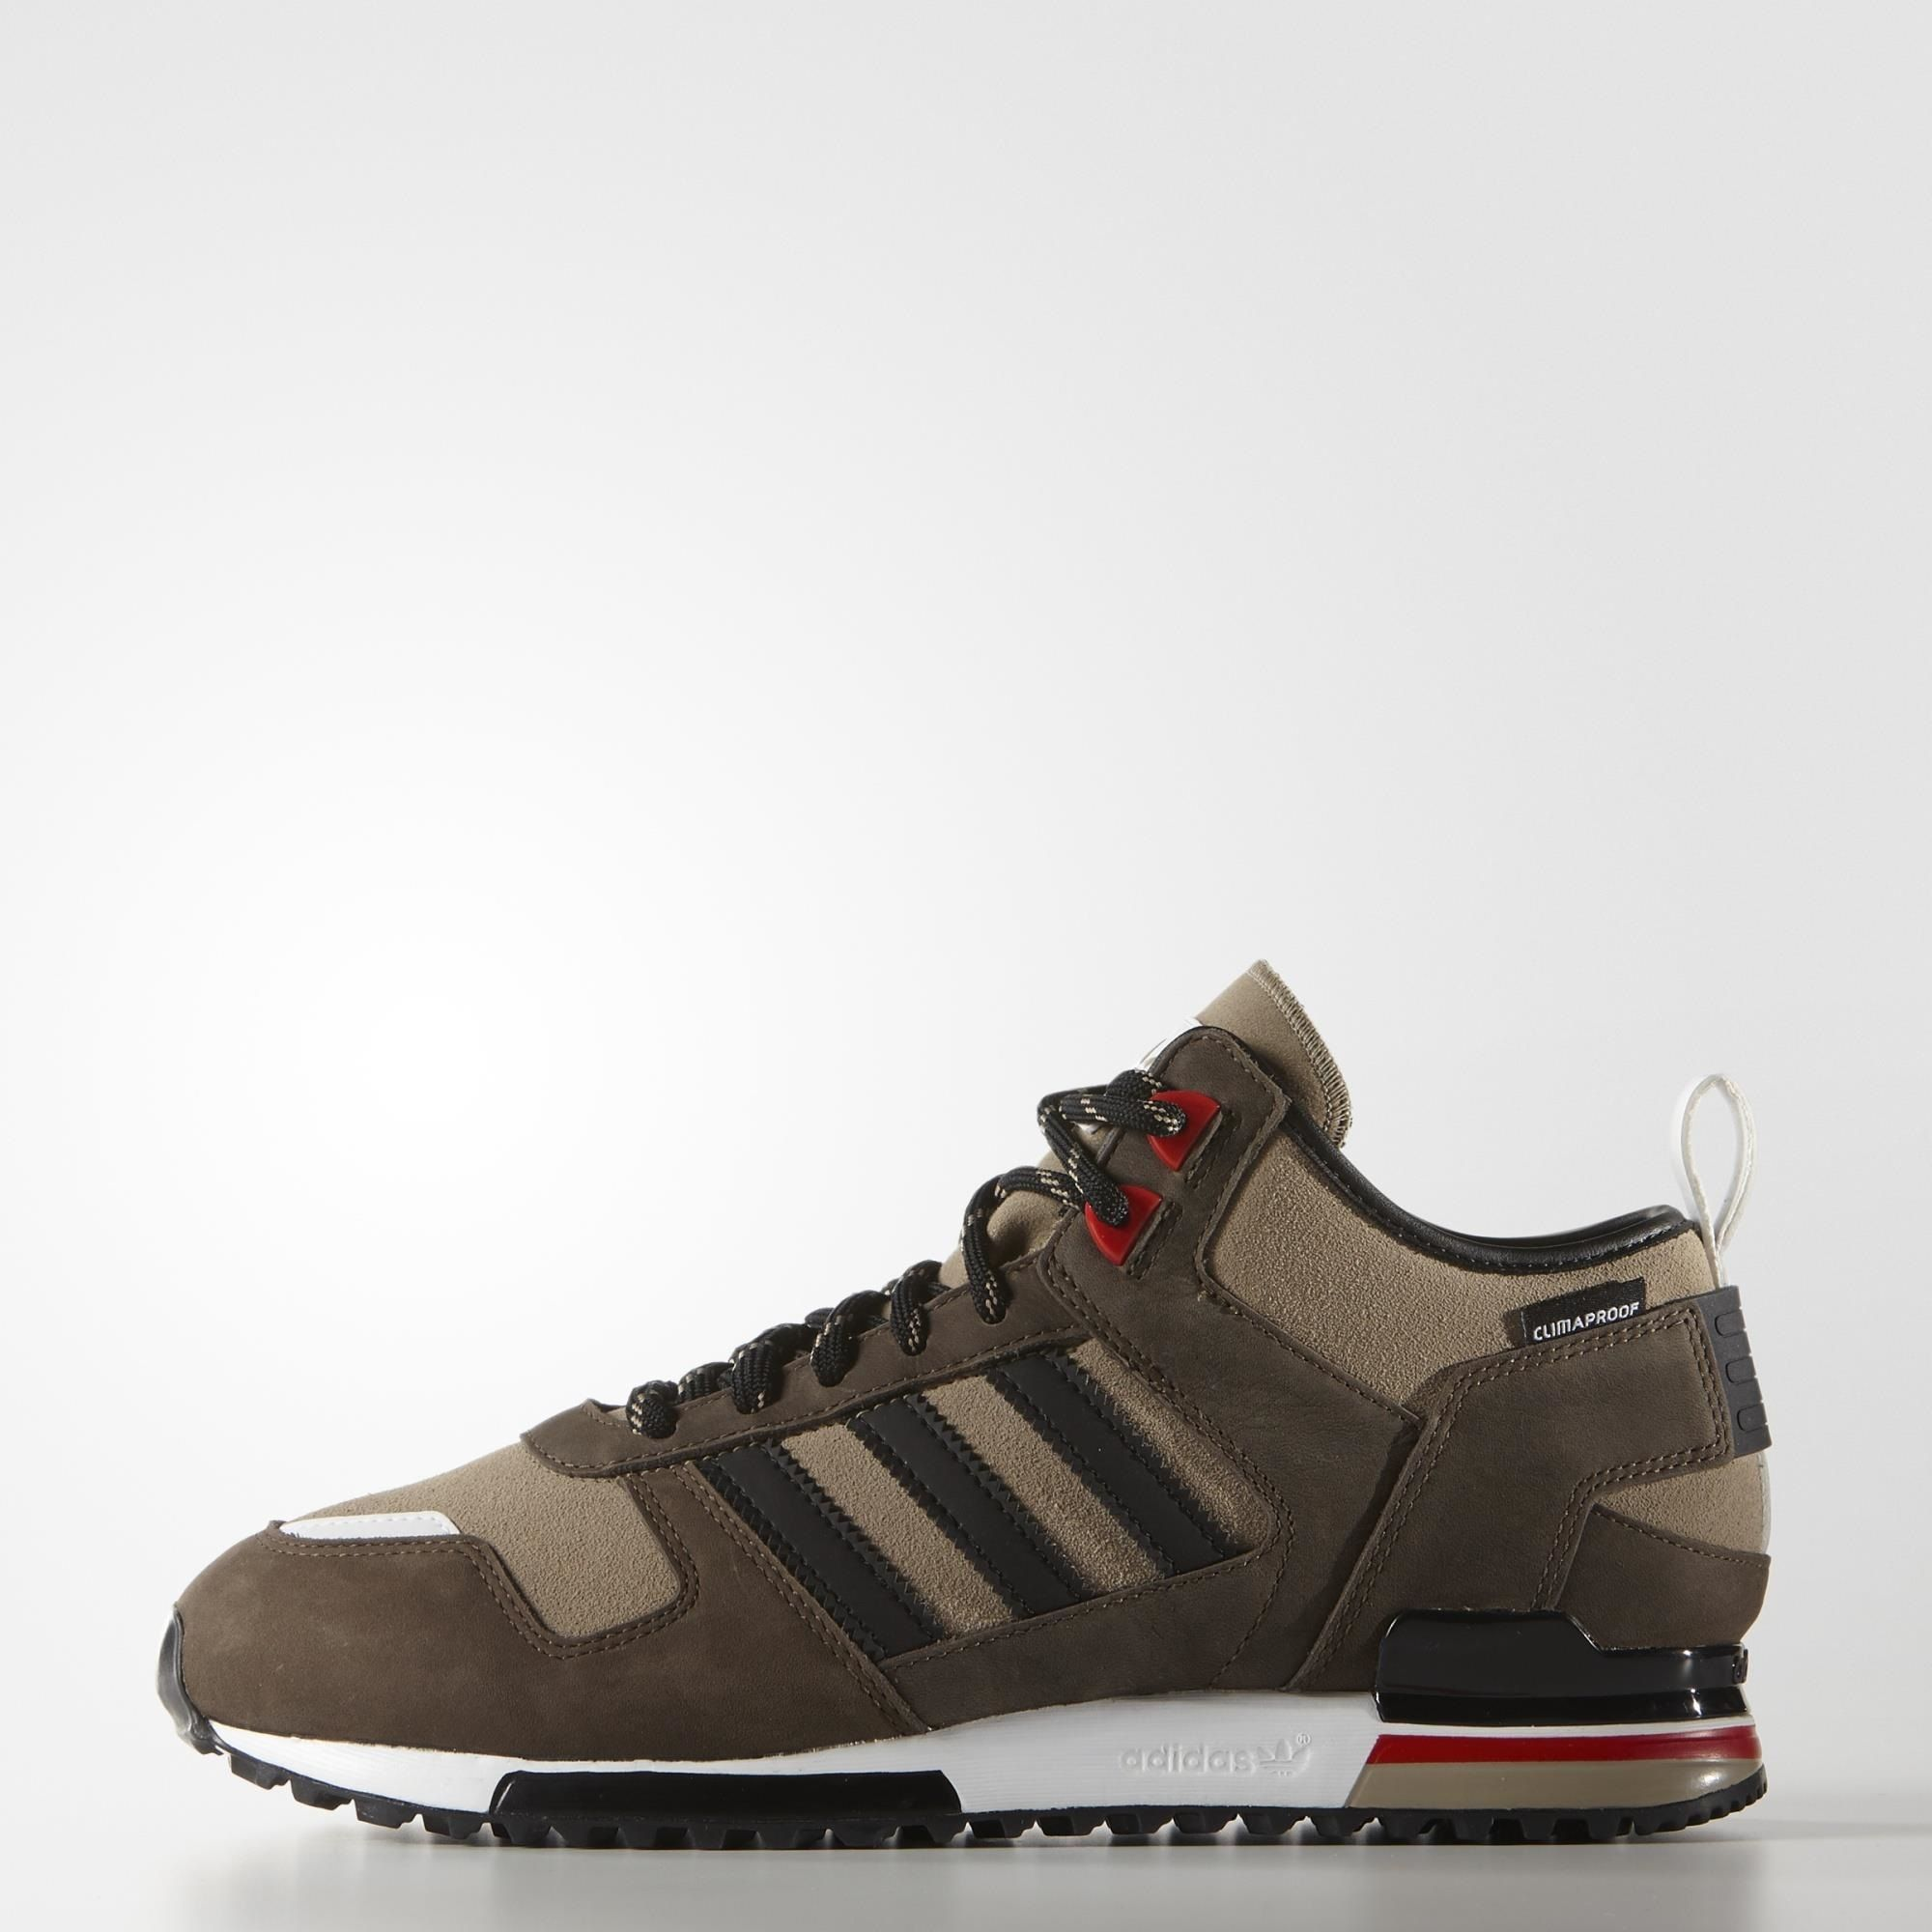 adidas ZX 700 Winter ClimaProof Shoes - Green | adidas US